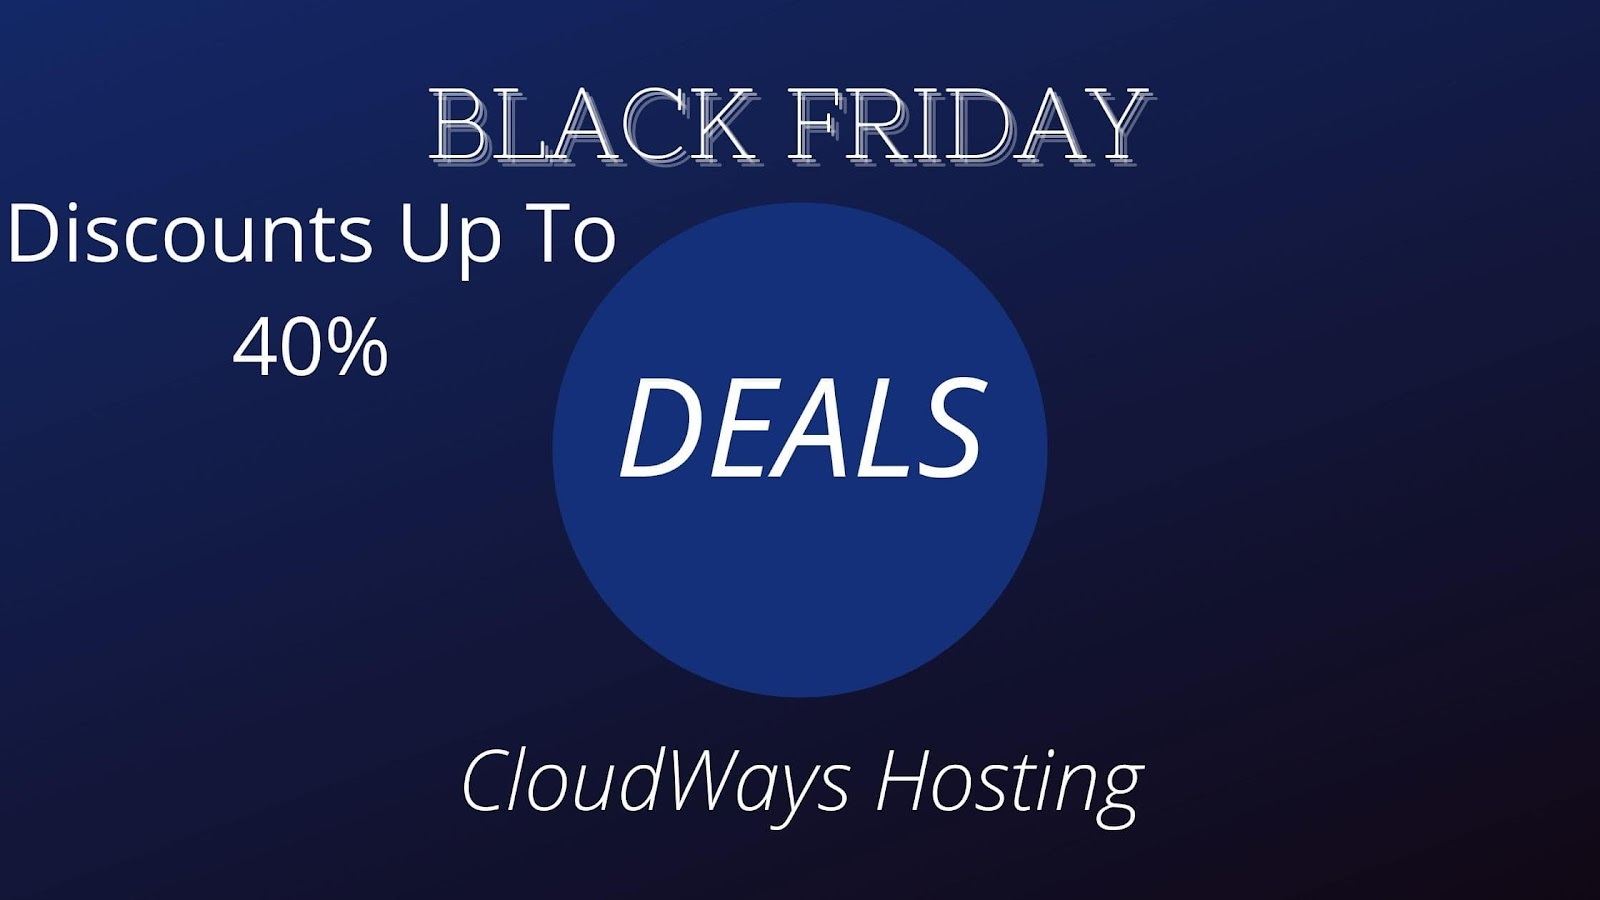 CloudWays: Discounts Up To 40%